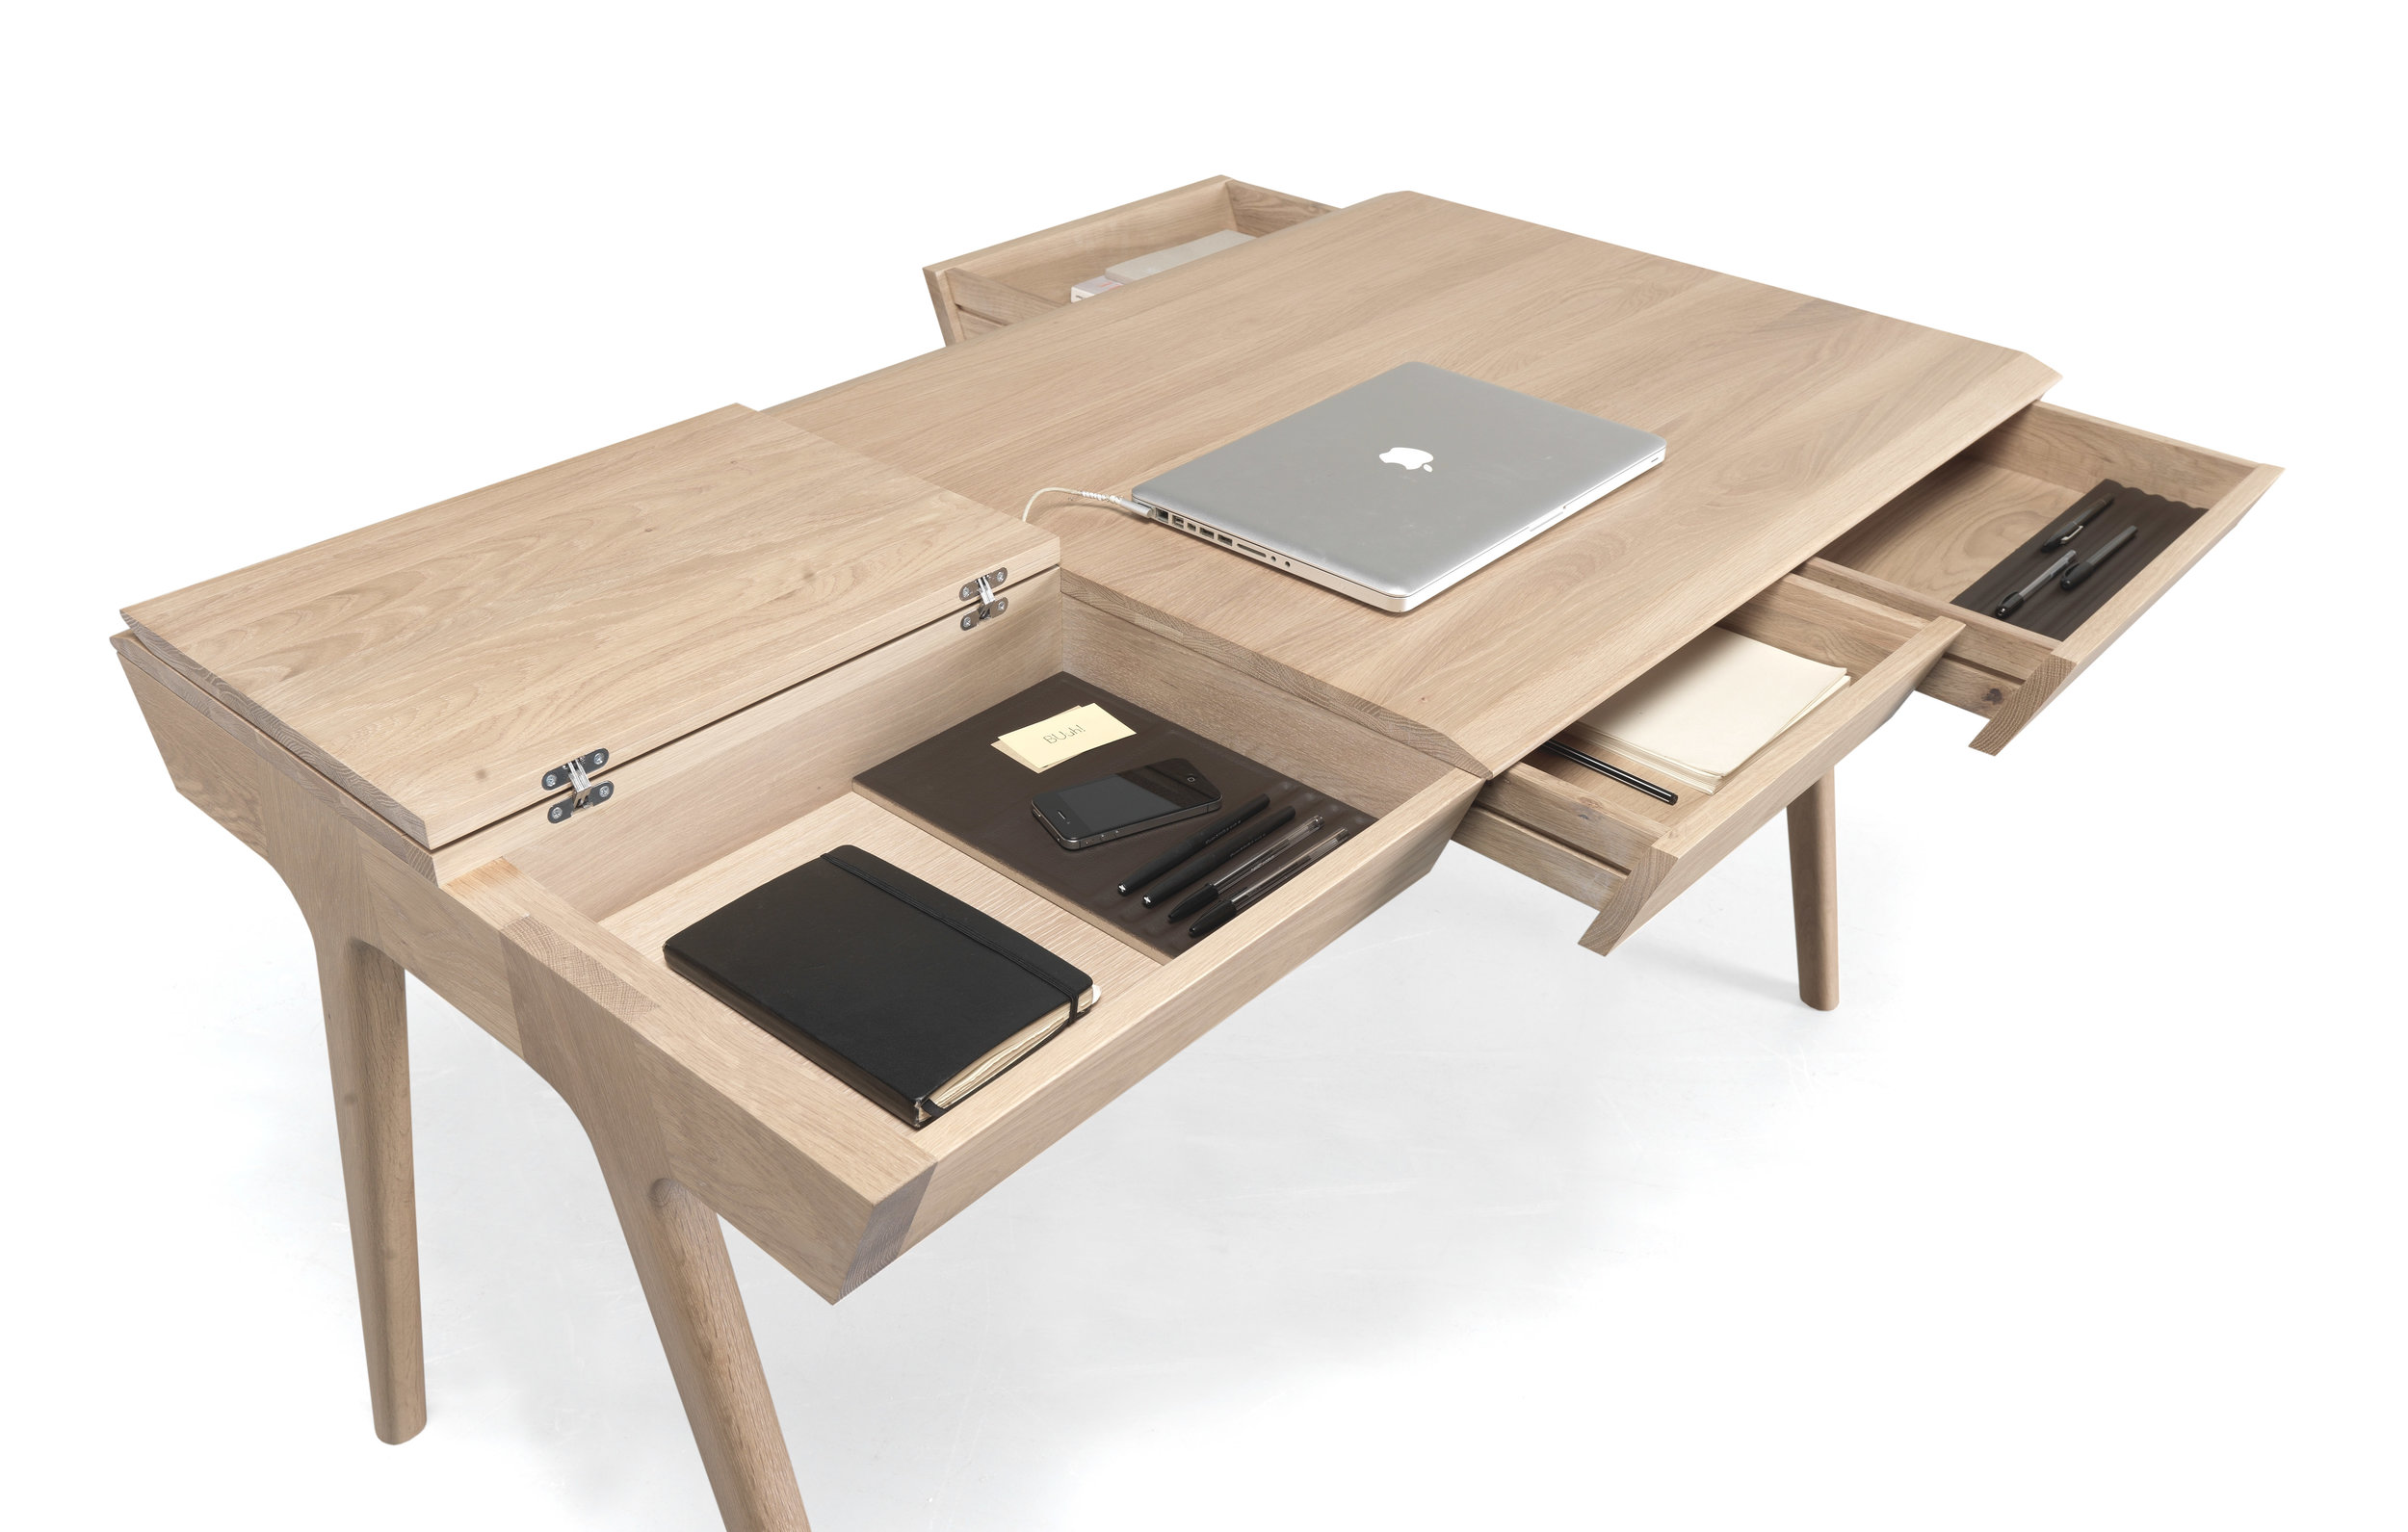 This Autumn keep your home-office tidy and organized with METIS desk. It's the perfect addition for someone who's looking for a touch of sophistication in a smart and tidy workspace.